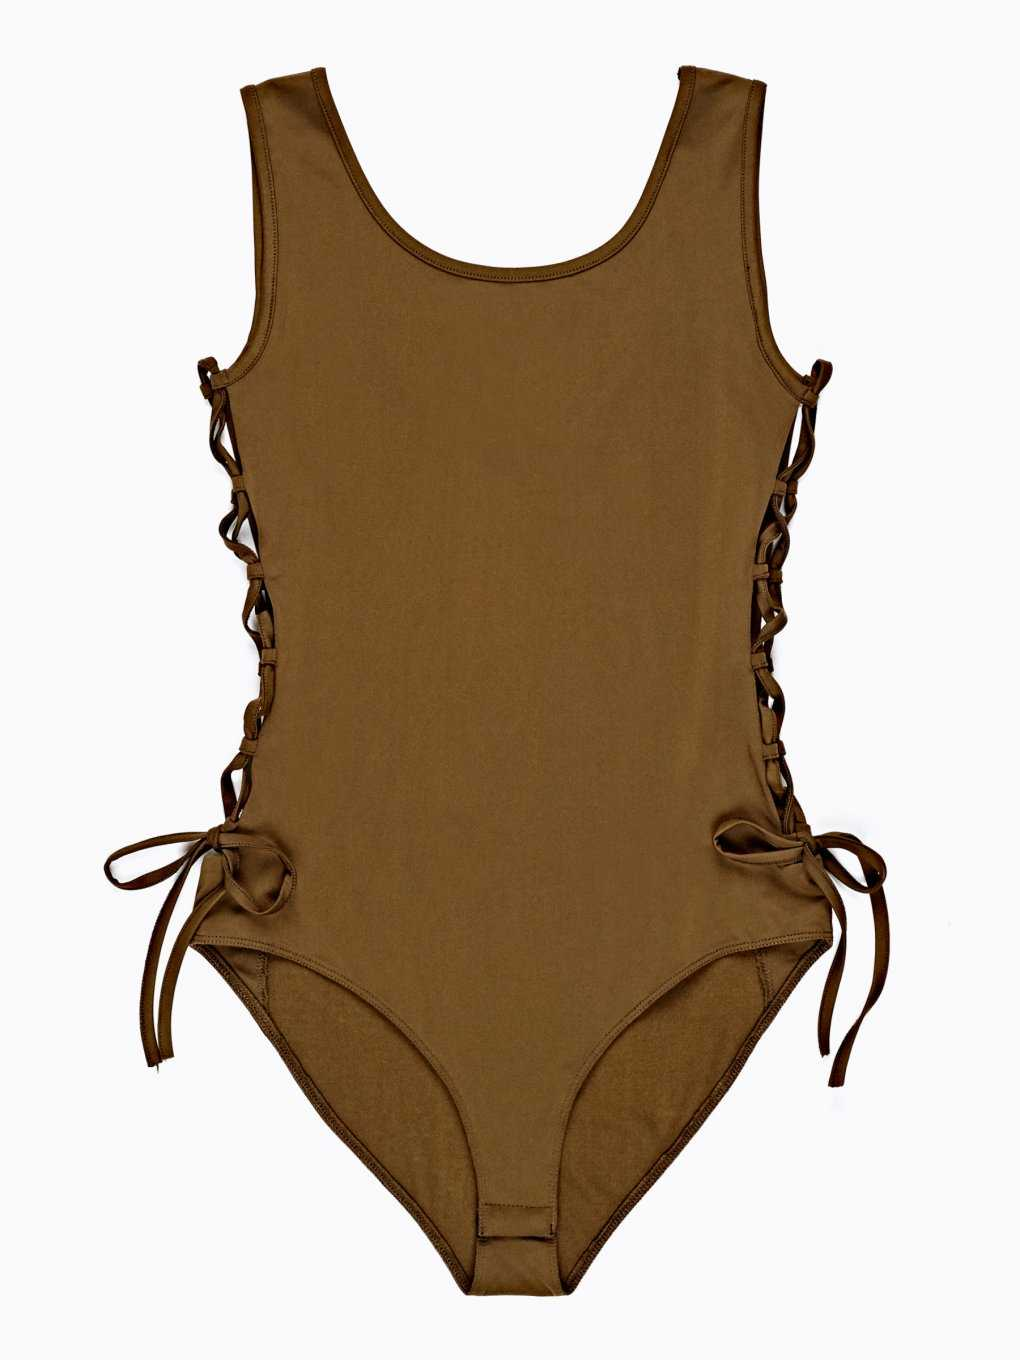 SLEEVELESS BODYSUIT WITH SIDE LACING